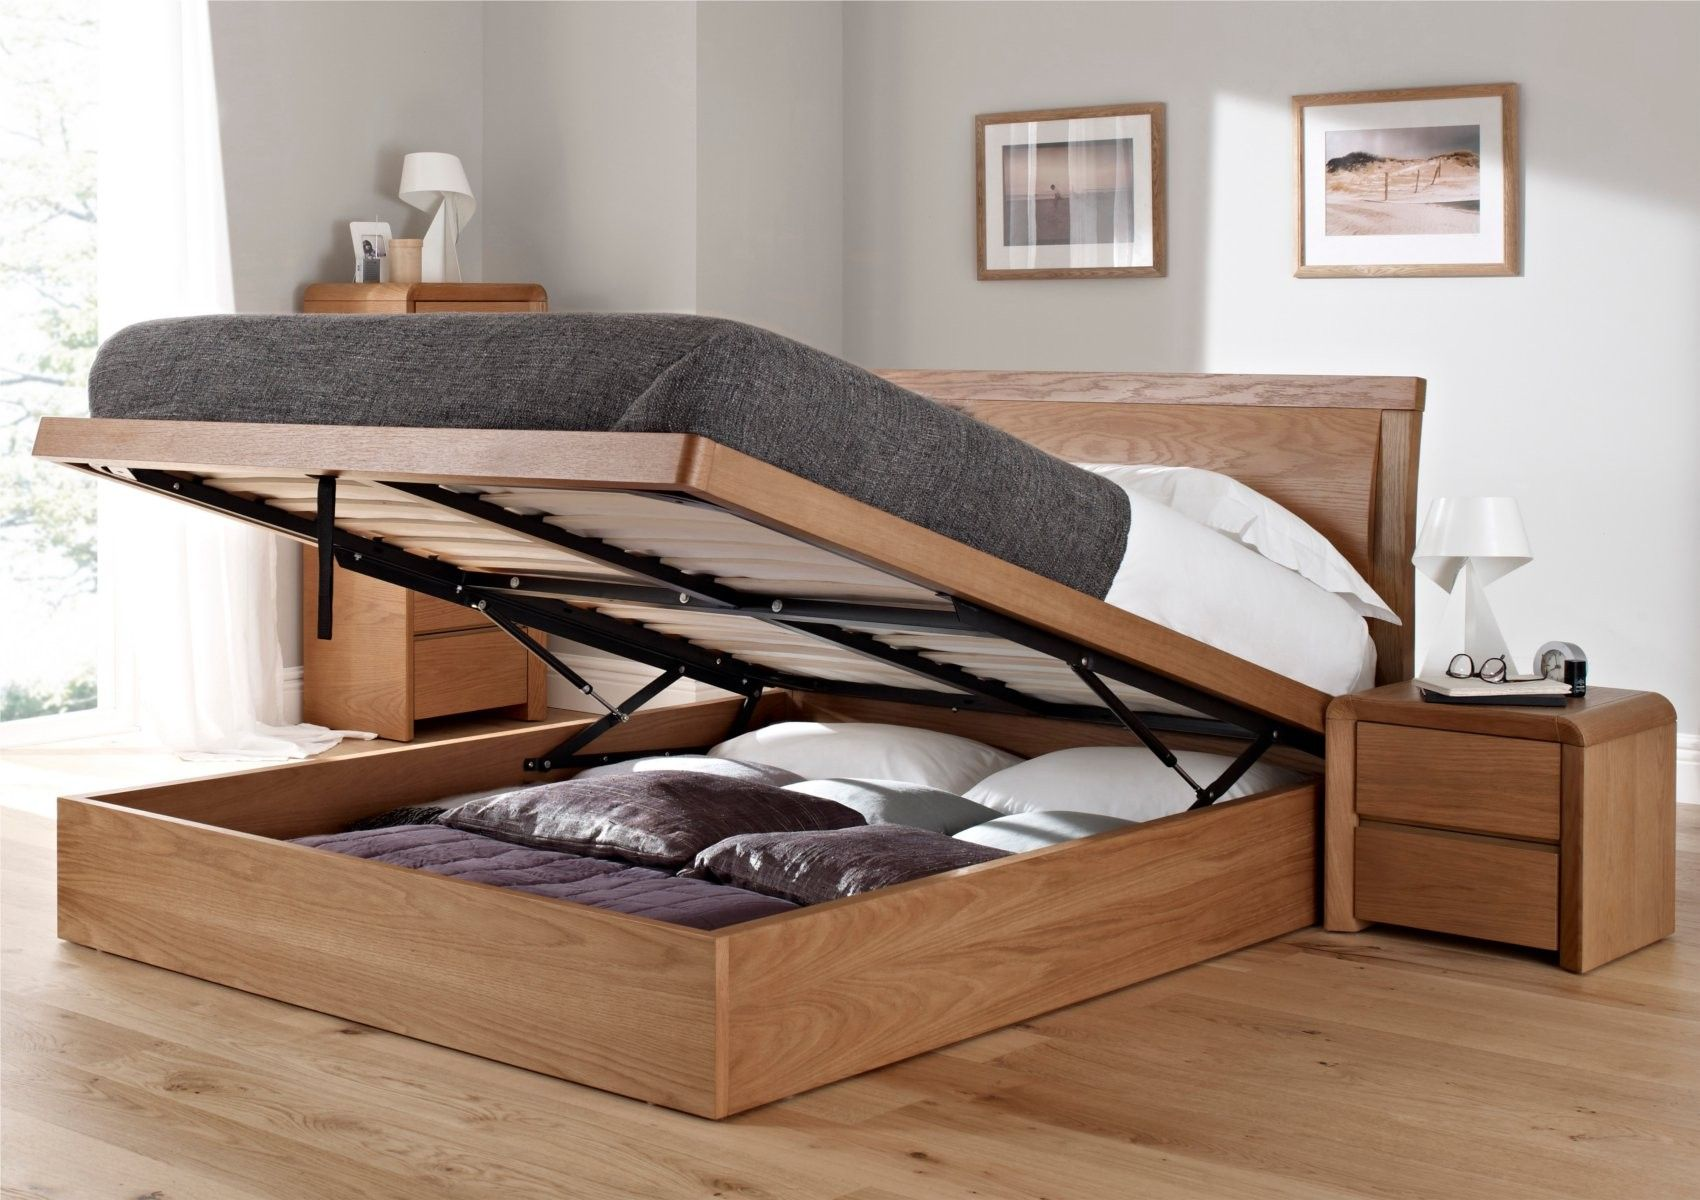 Prepossessing King Size Ottoman Storage Bed New In Apartment